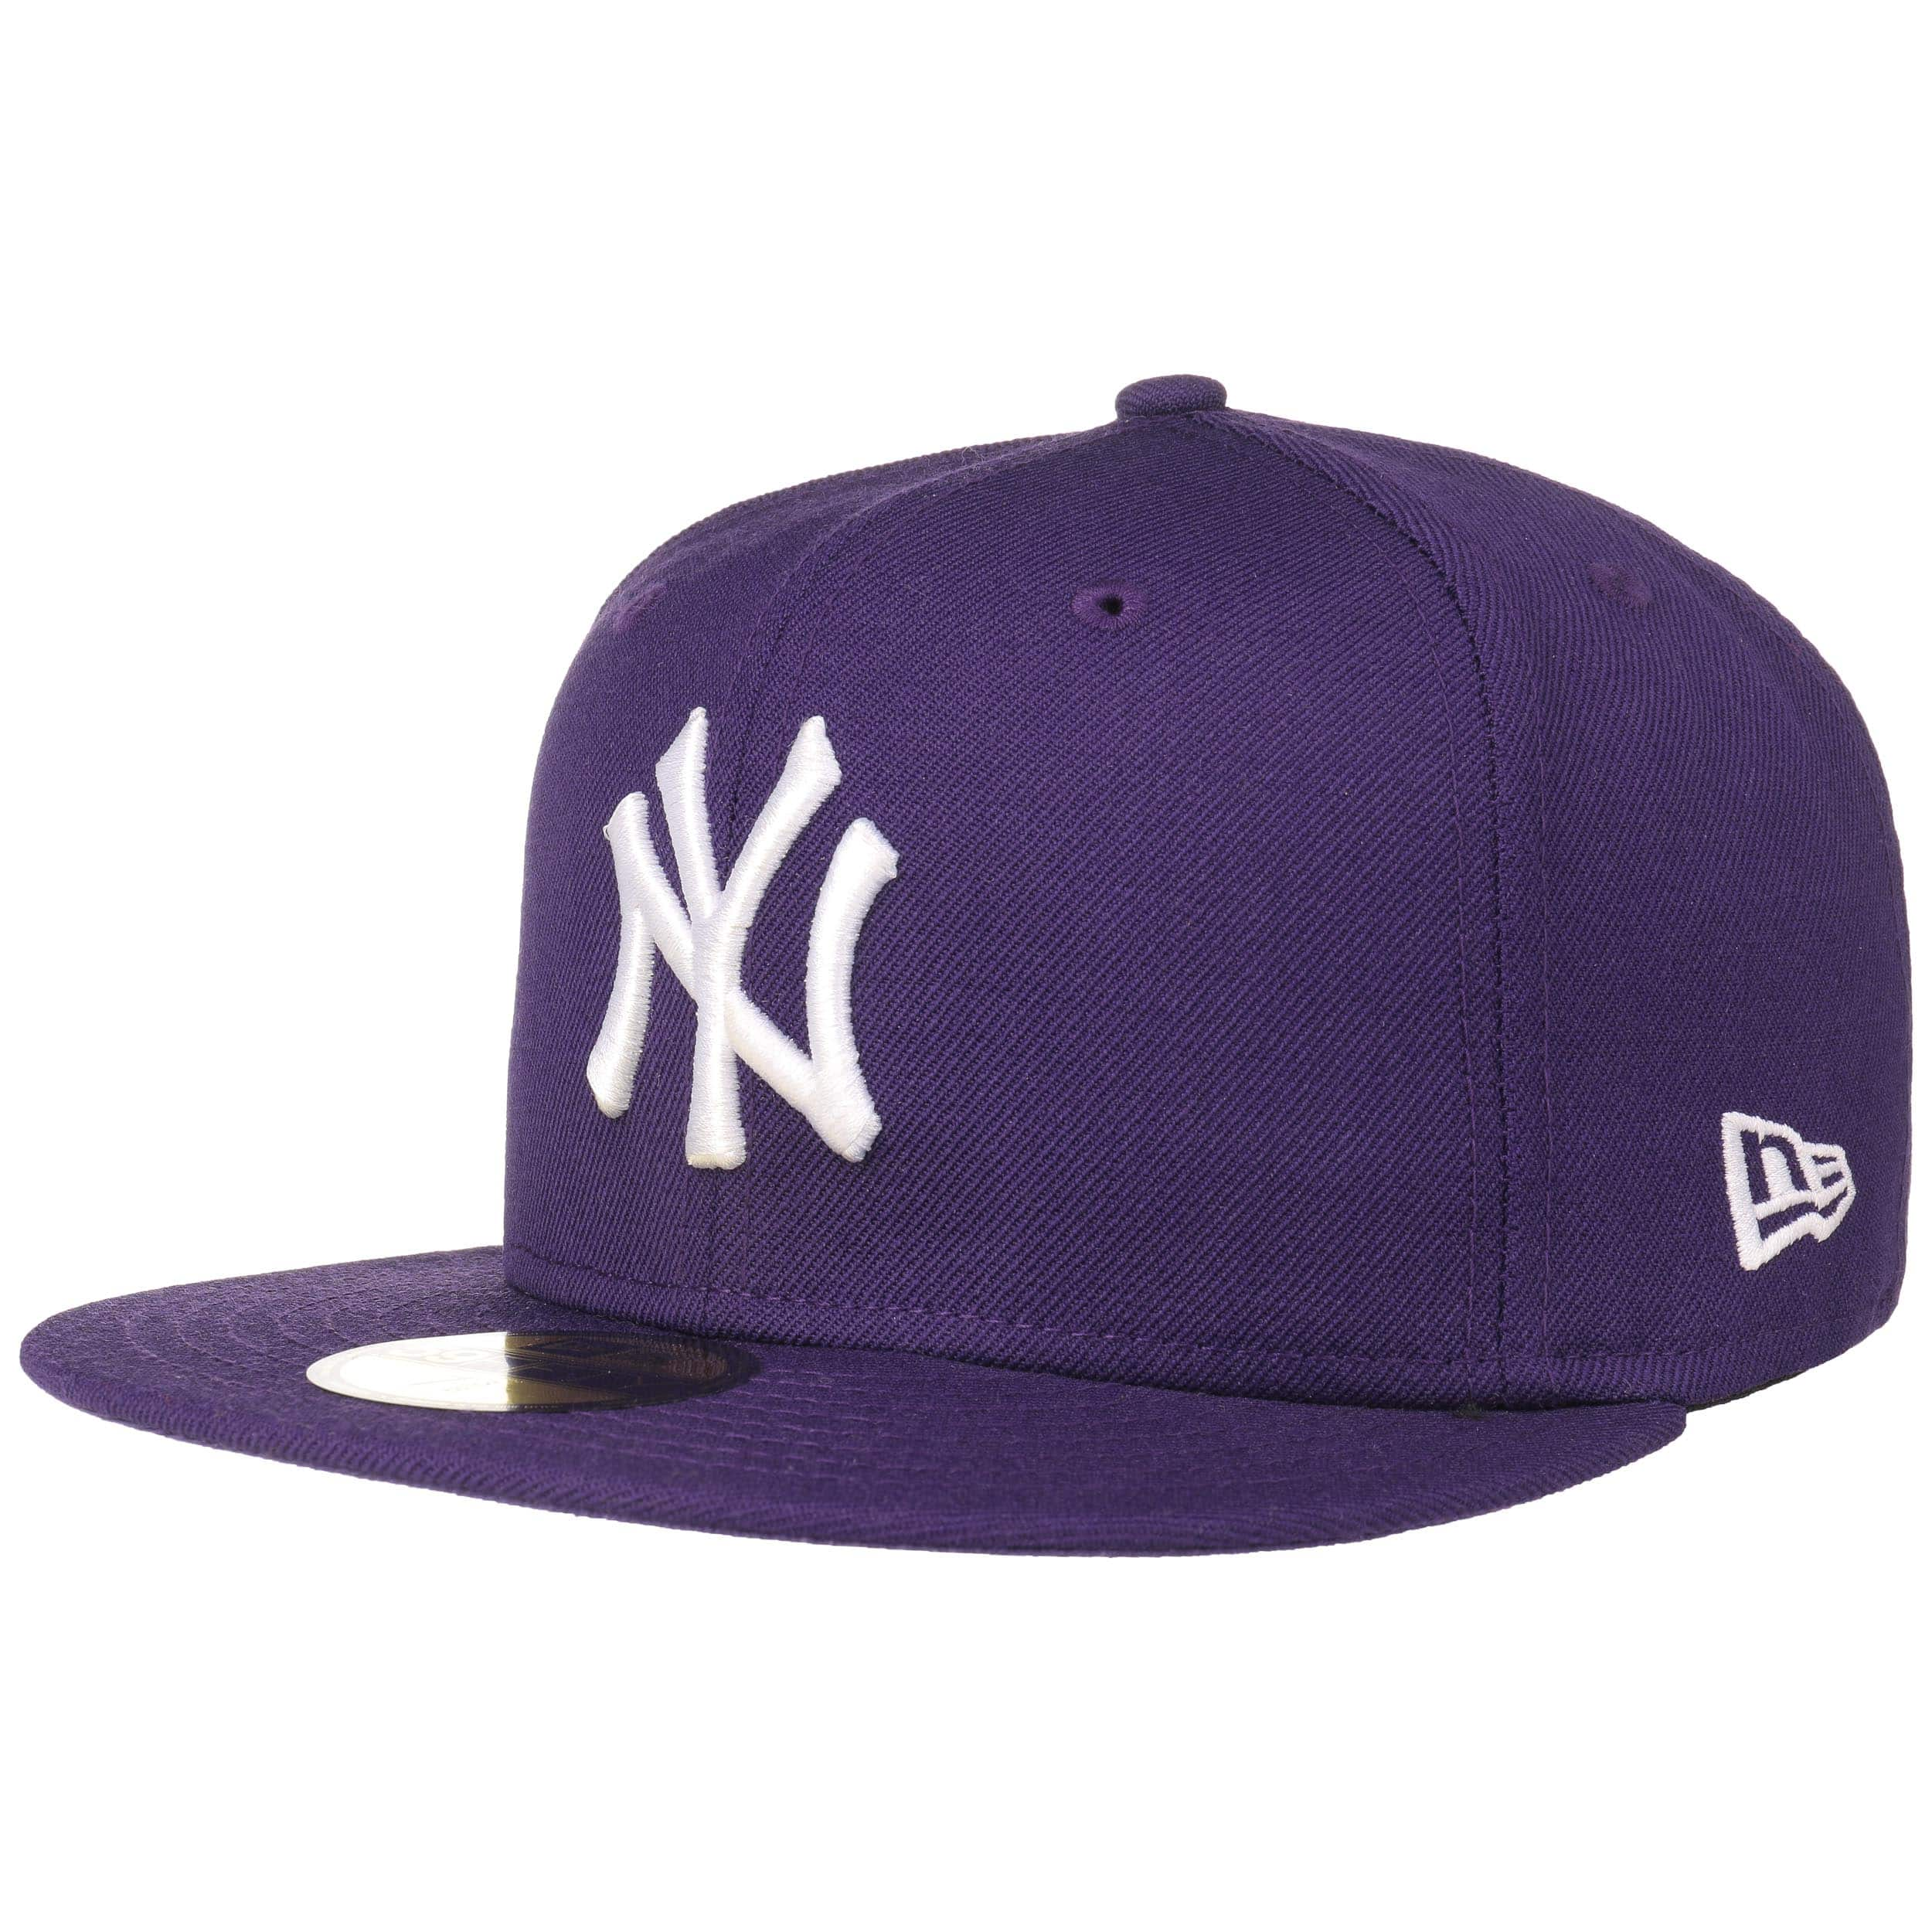 amazing price official supplier new appearance 59Fifty MLB Basic NY Cap by New Era - 42,95 €